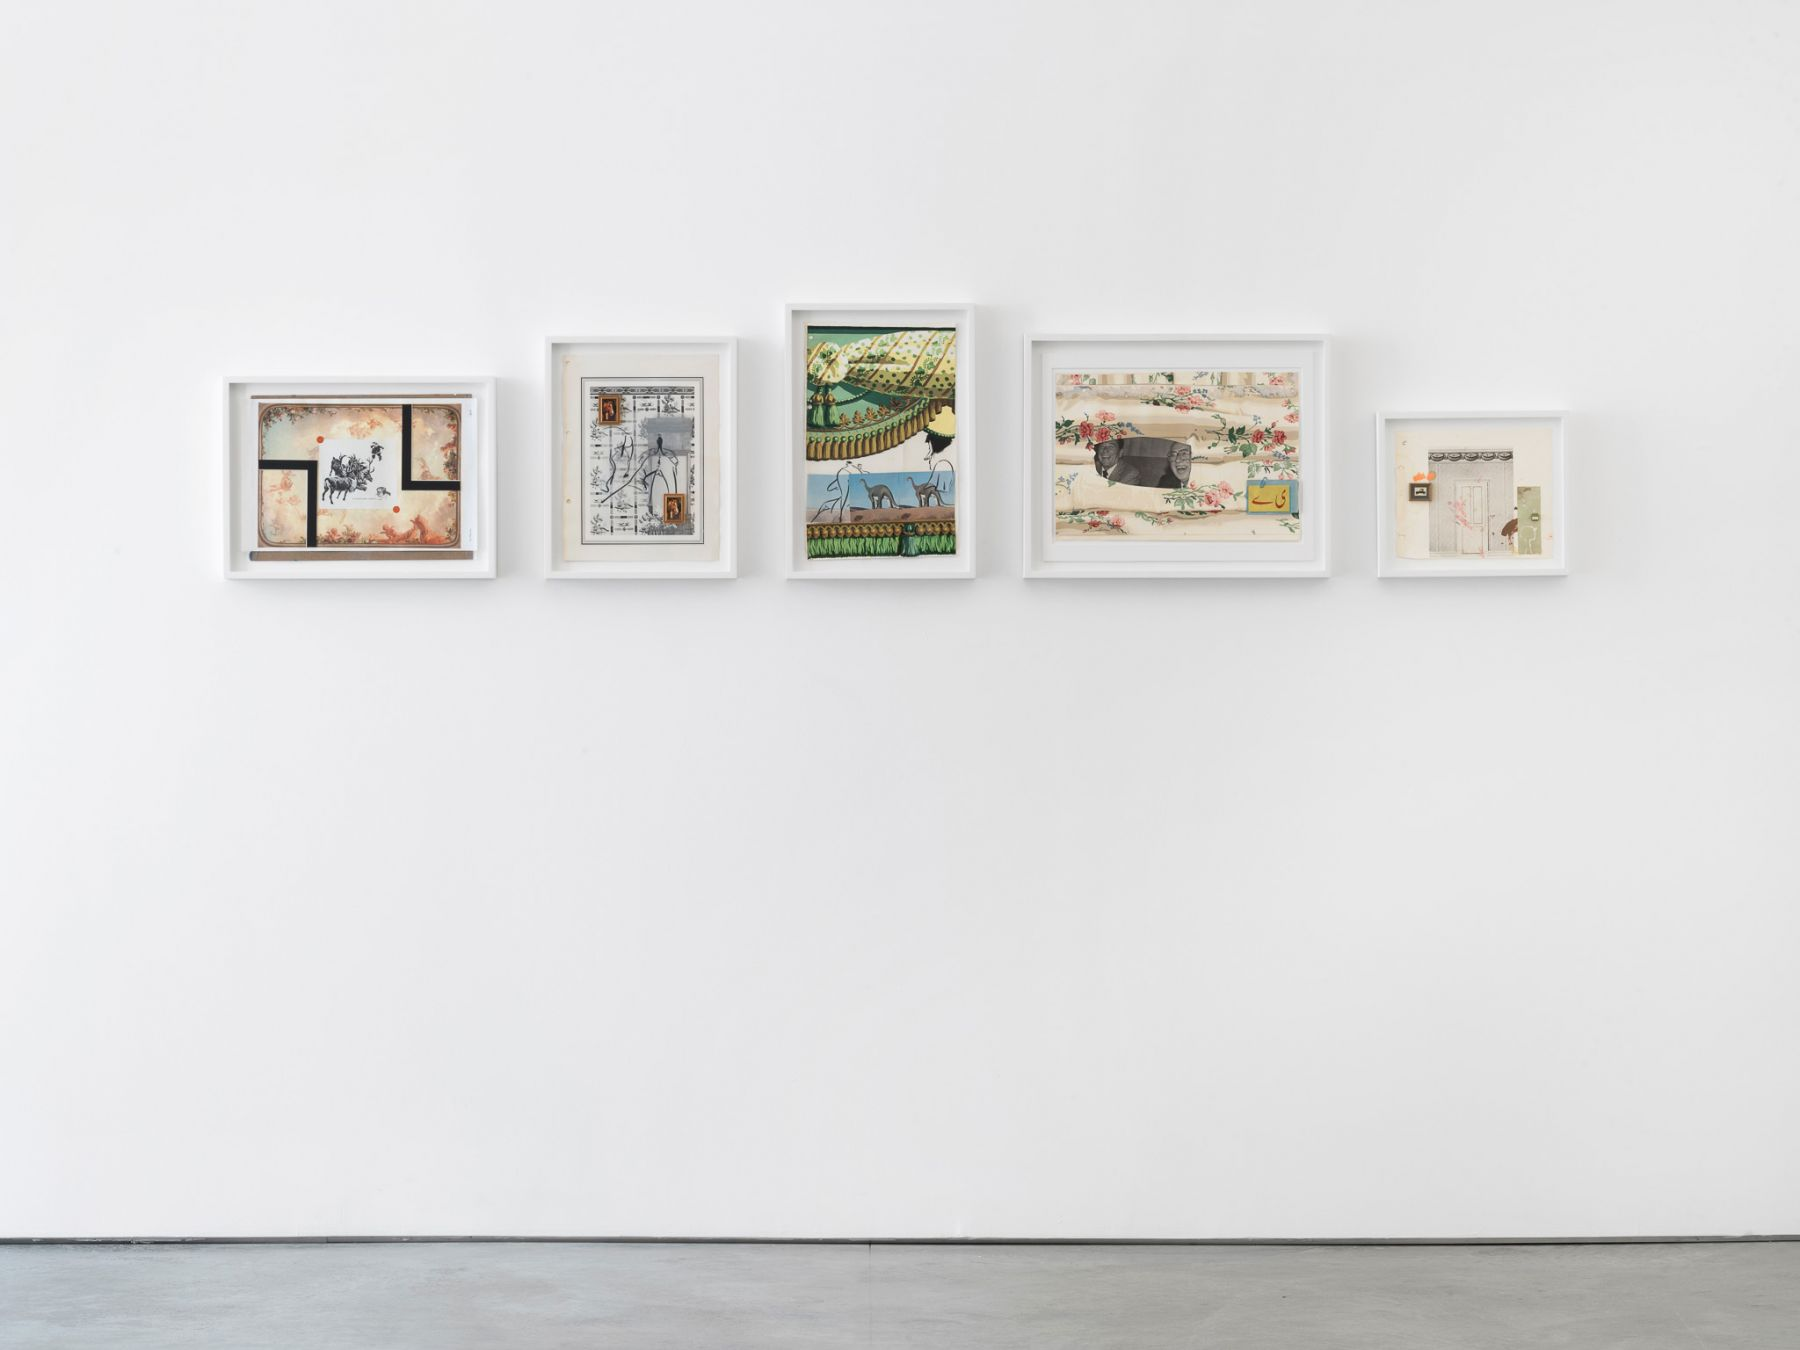 Sue Williams, Installation view: 303 Gallery, 2017